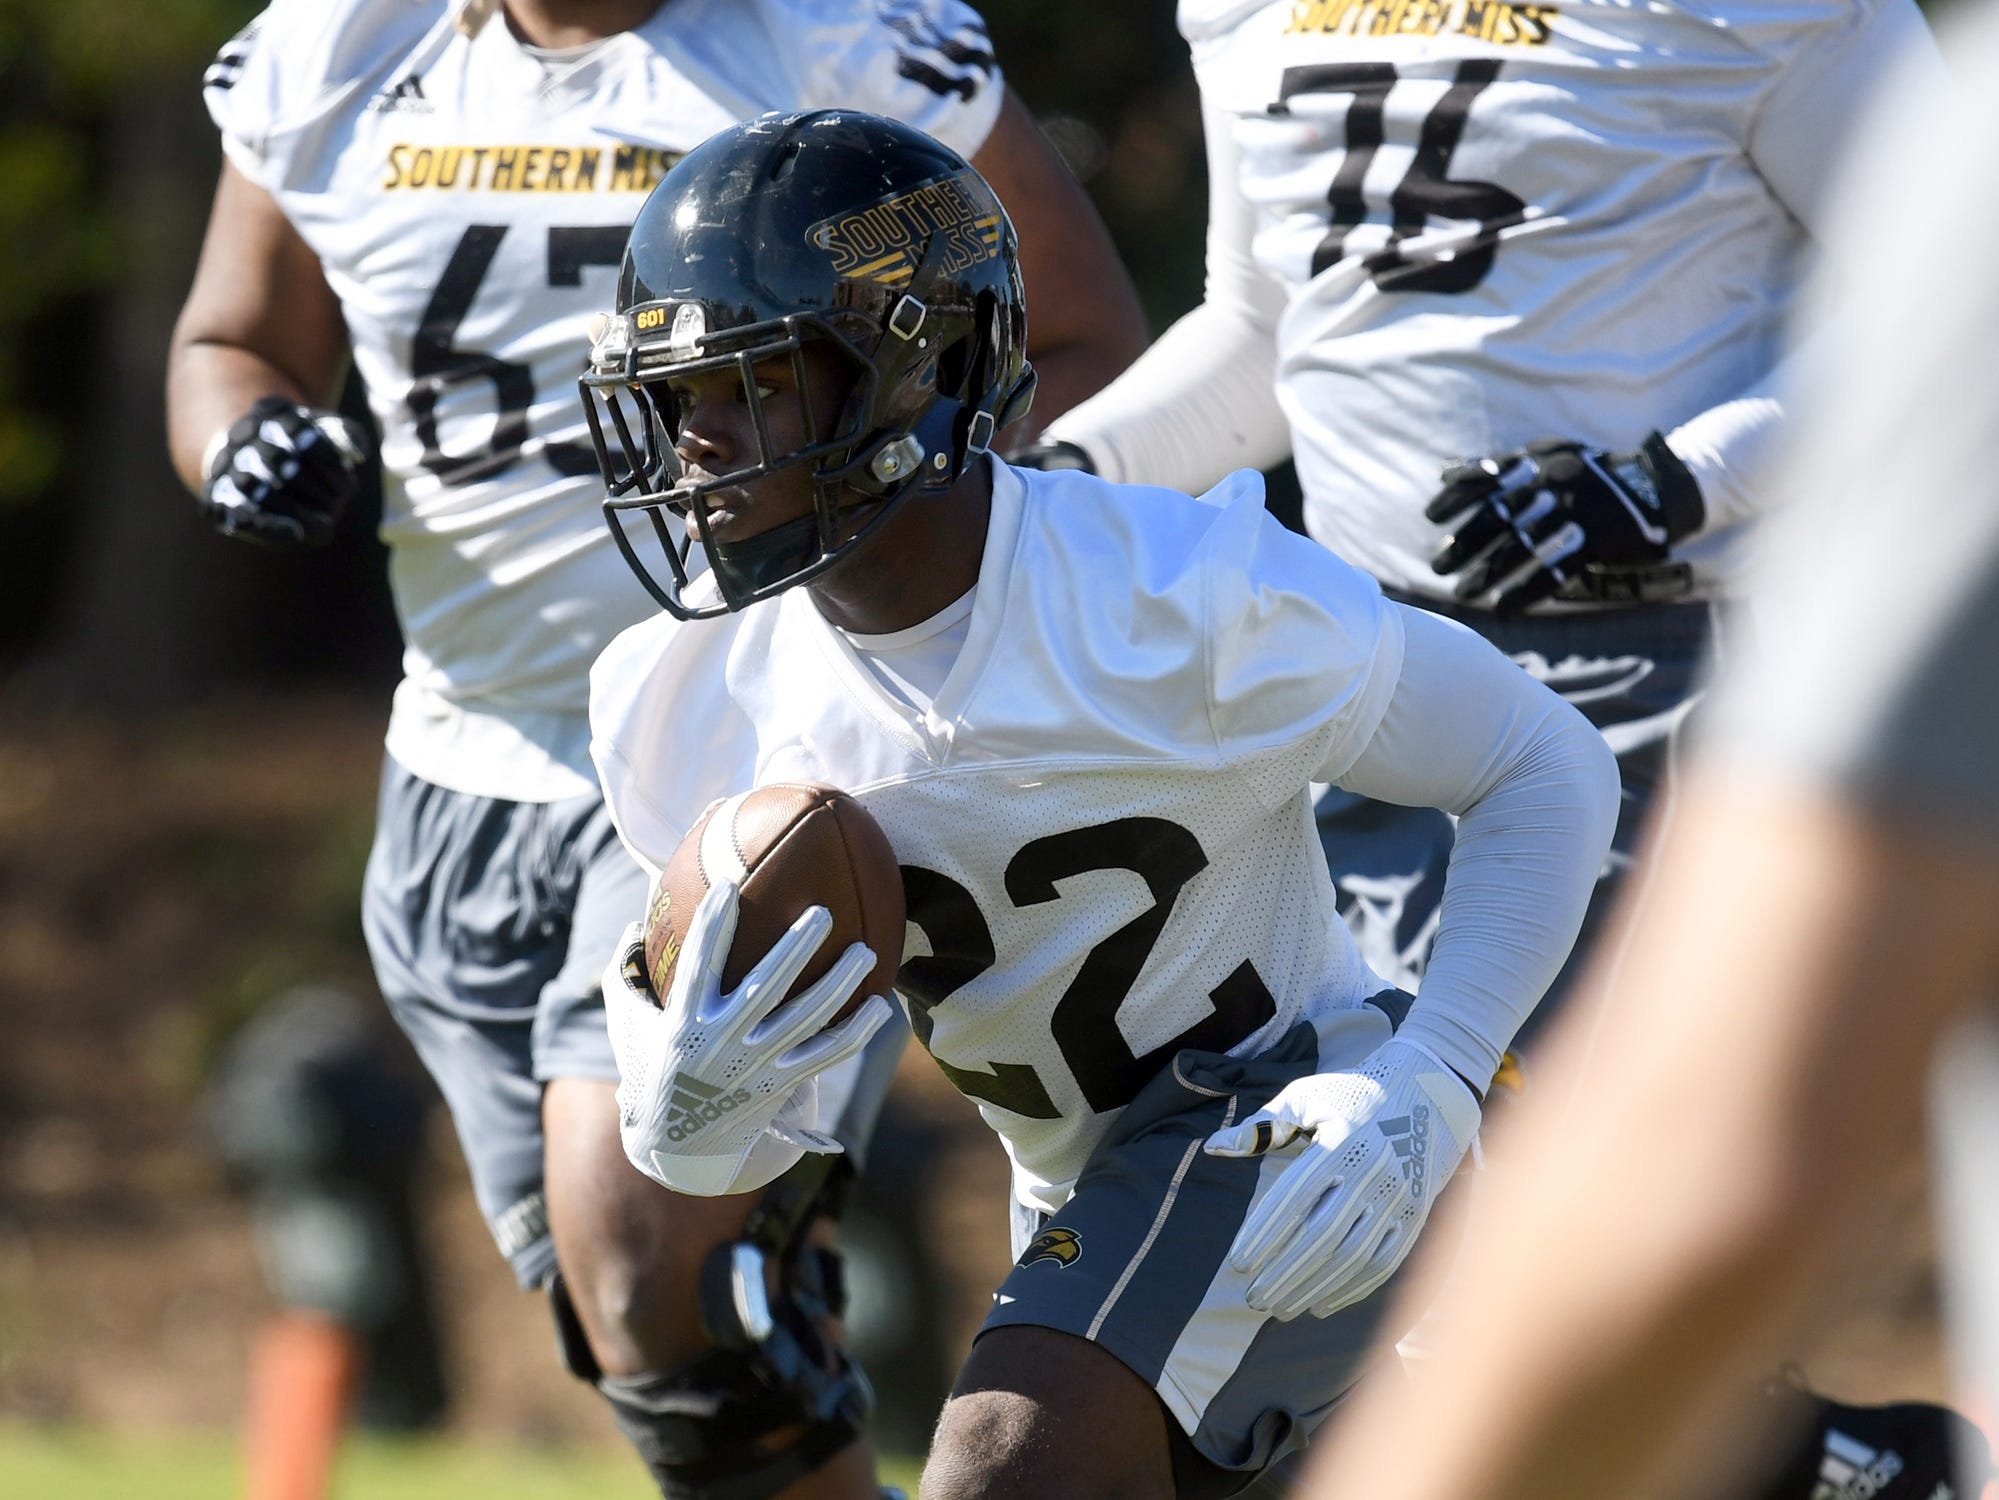 Southern Miss running back Trivenskey Mosley participates in the first day of spring practice in Hattiesburg on Tuesday, March 19, 2019.